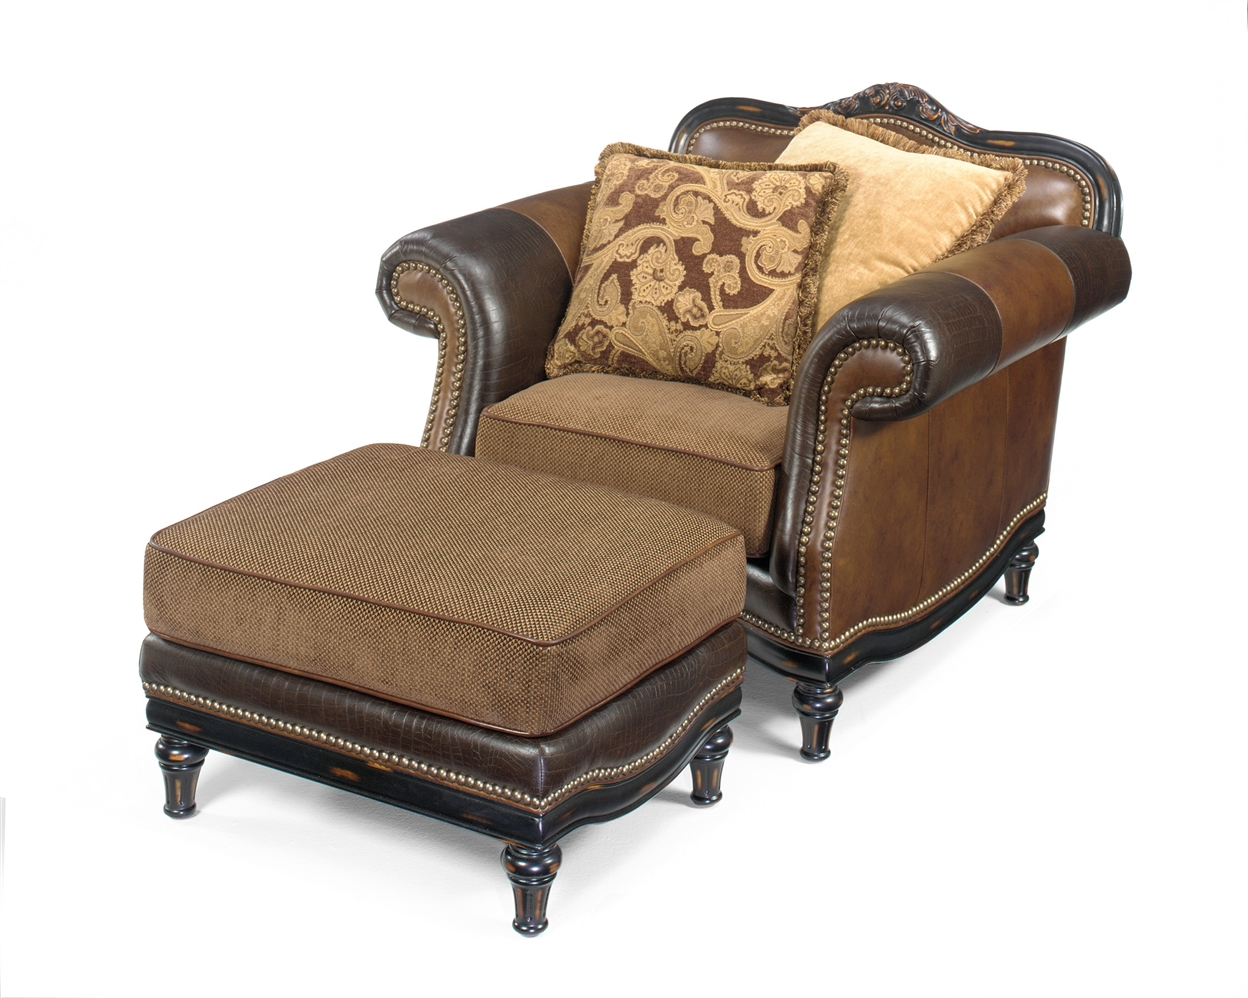 Western Style Furniture Upholstered Quality Chair And Ottoman